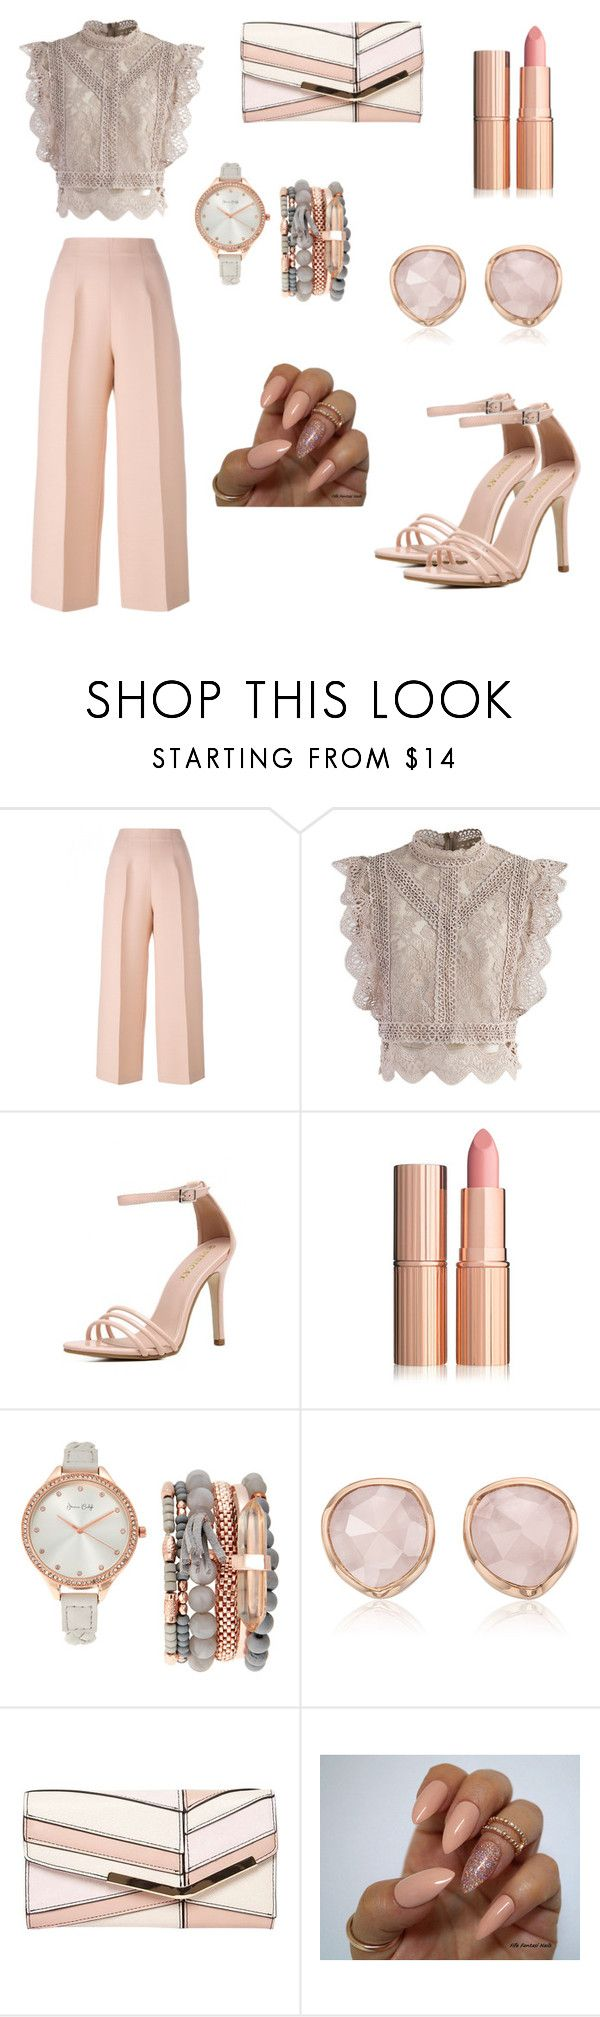 FRIDAYS OUTFITS by tsigemcclelland on Polyvore featuring Chicwish, Fendi, Dorothy Perkins, Jessica Carlyle and Monica Vinader